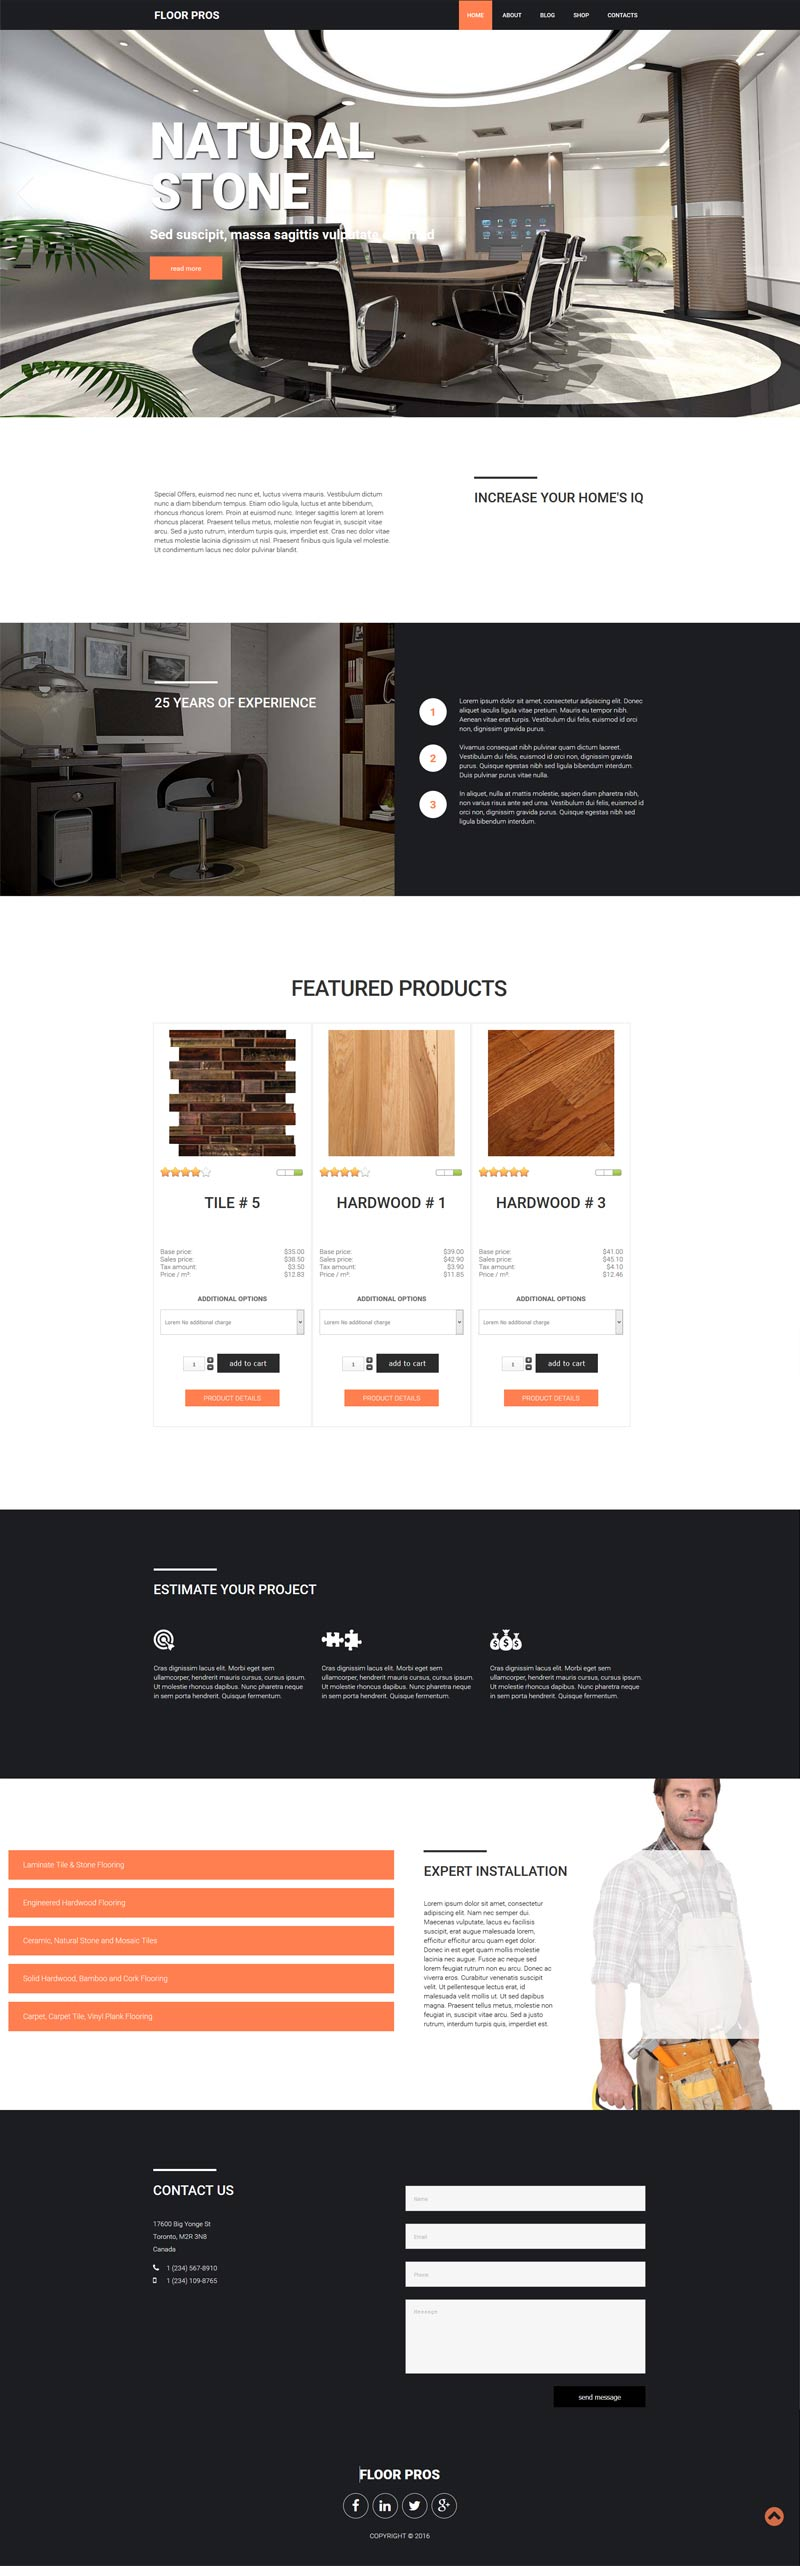 Flooring eCommerce Joomla! template